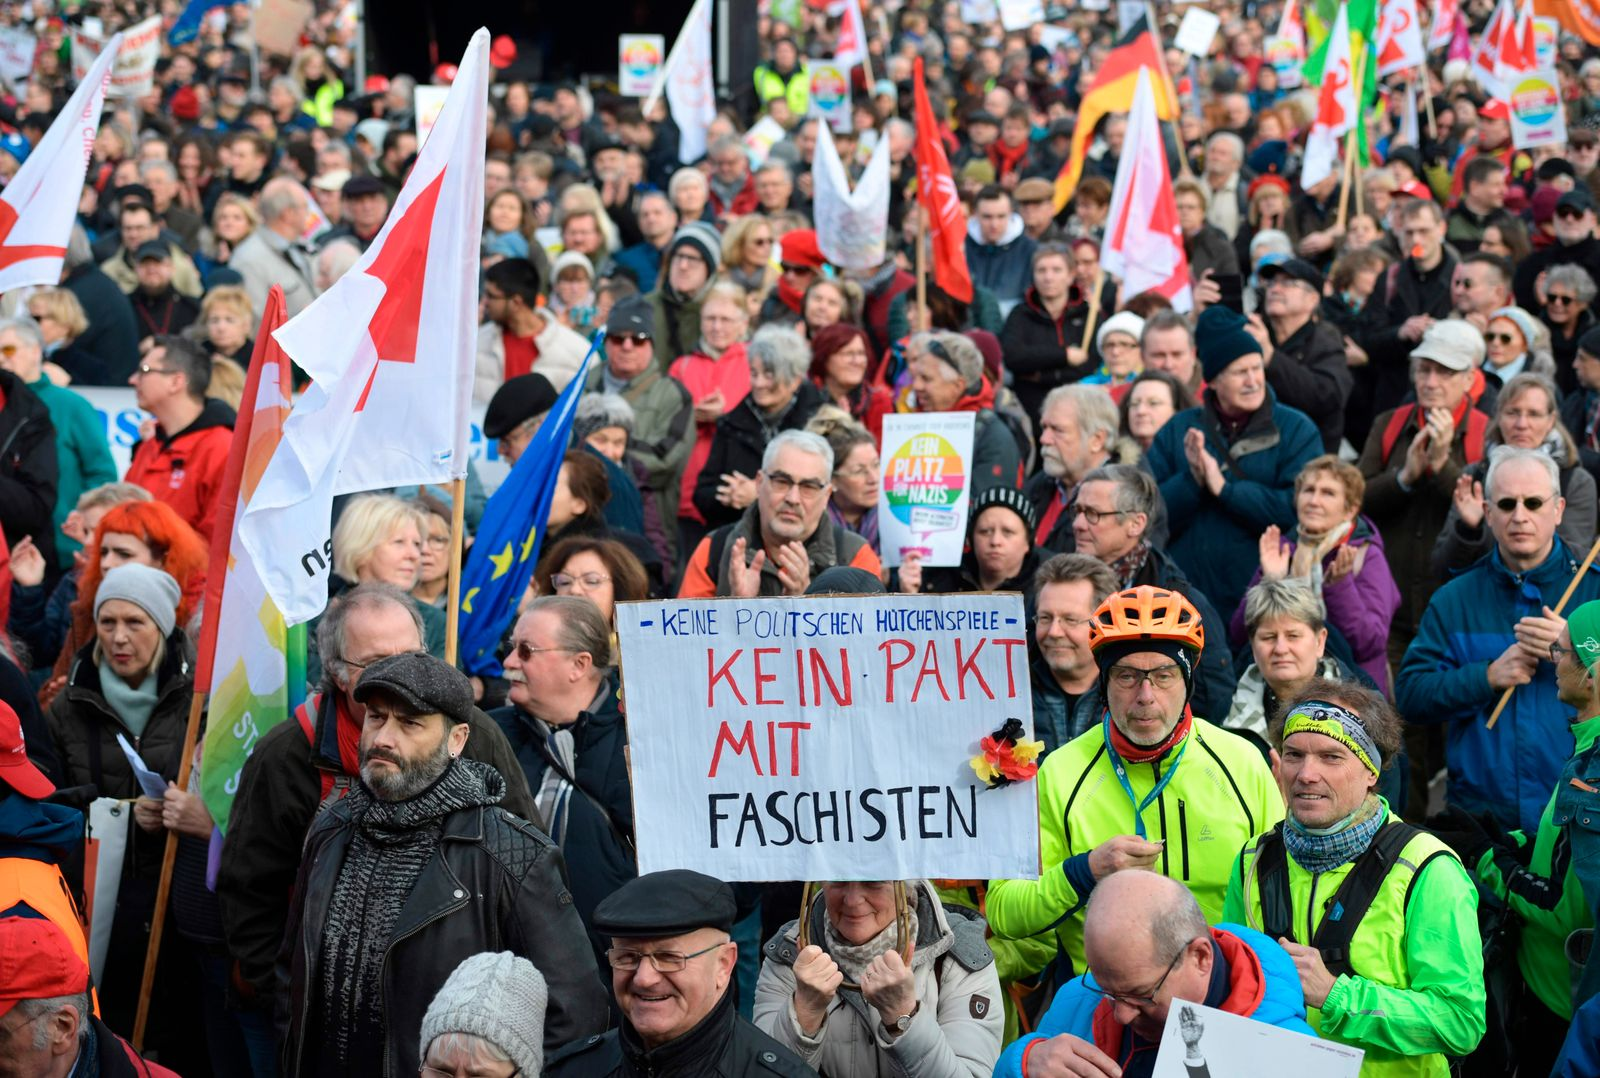 GERMANY-DEMONSTRATION-PARTIES-POLITICS-FARRIGHT